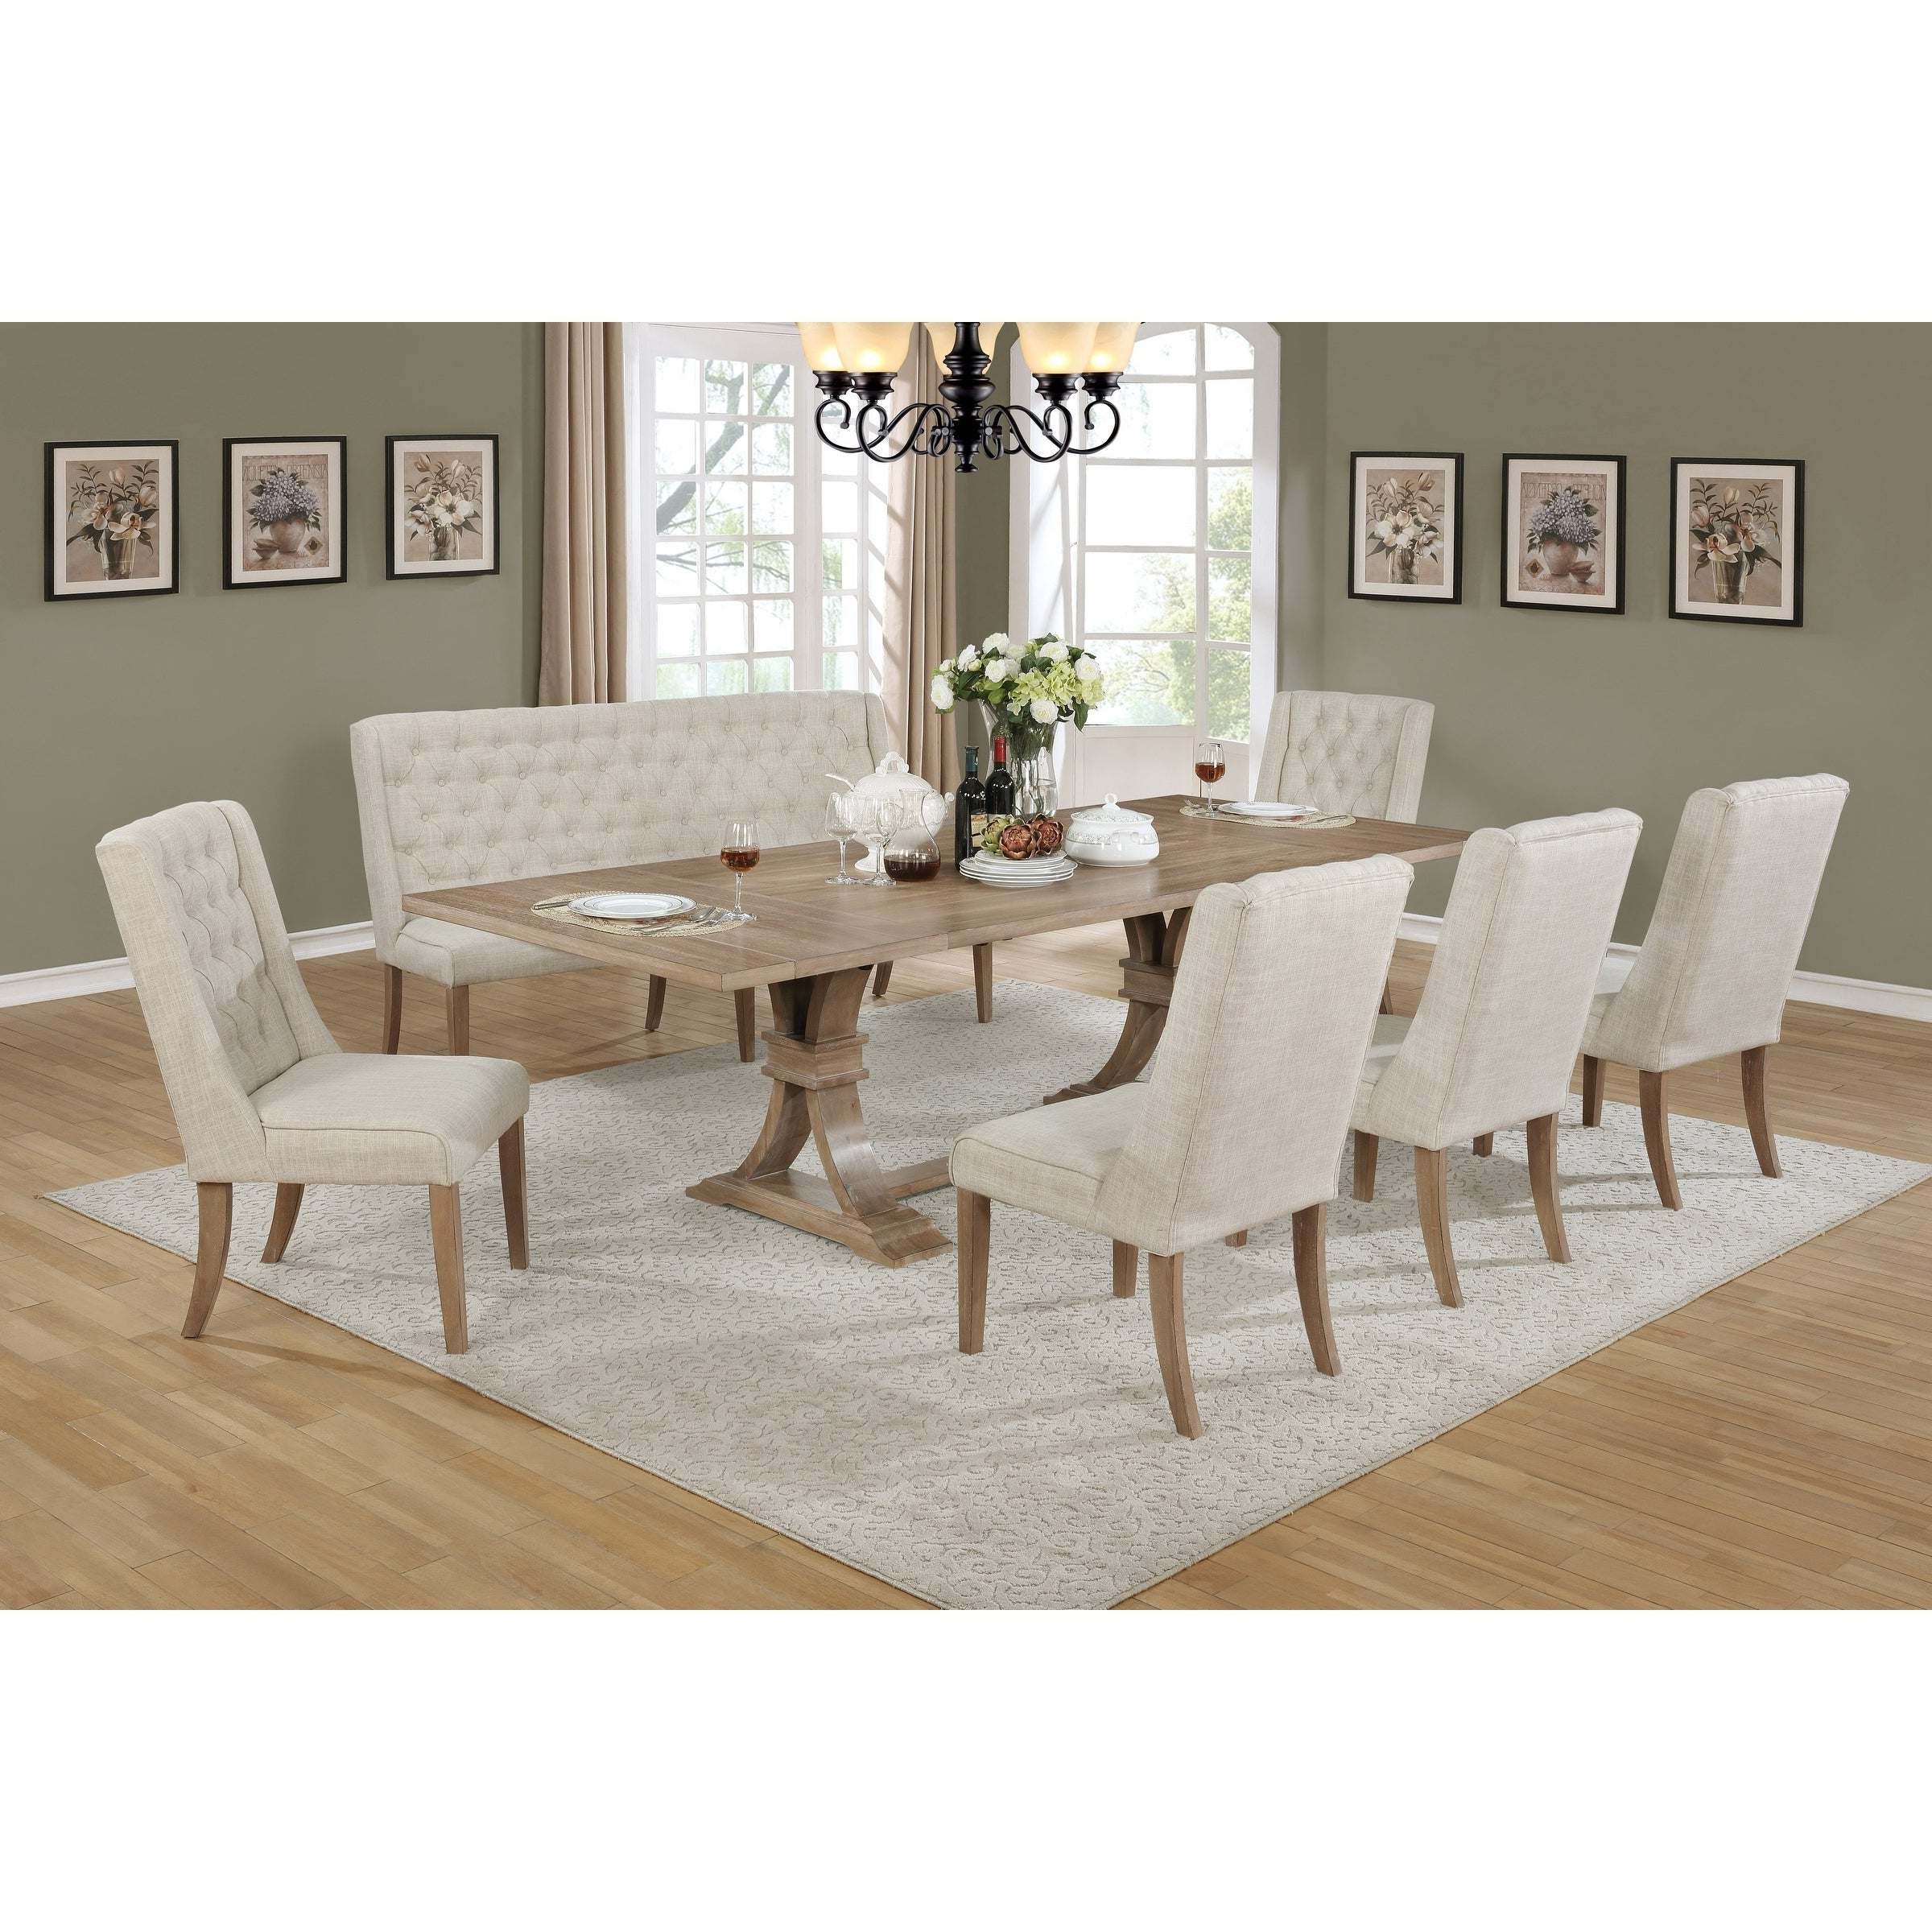 Autberry 5 Piece Dining Sets With Regard To Well Known Buy 7 Piece Sets Kitchen & Dining Room Sets Online At Overstock (View 11 of 25)